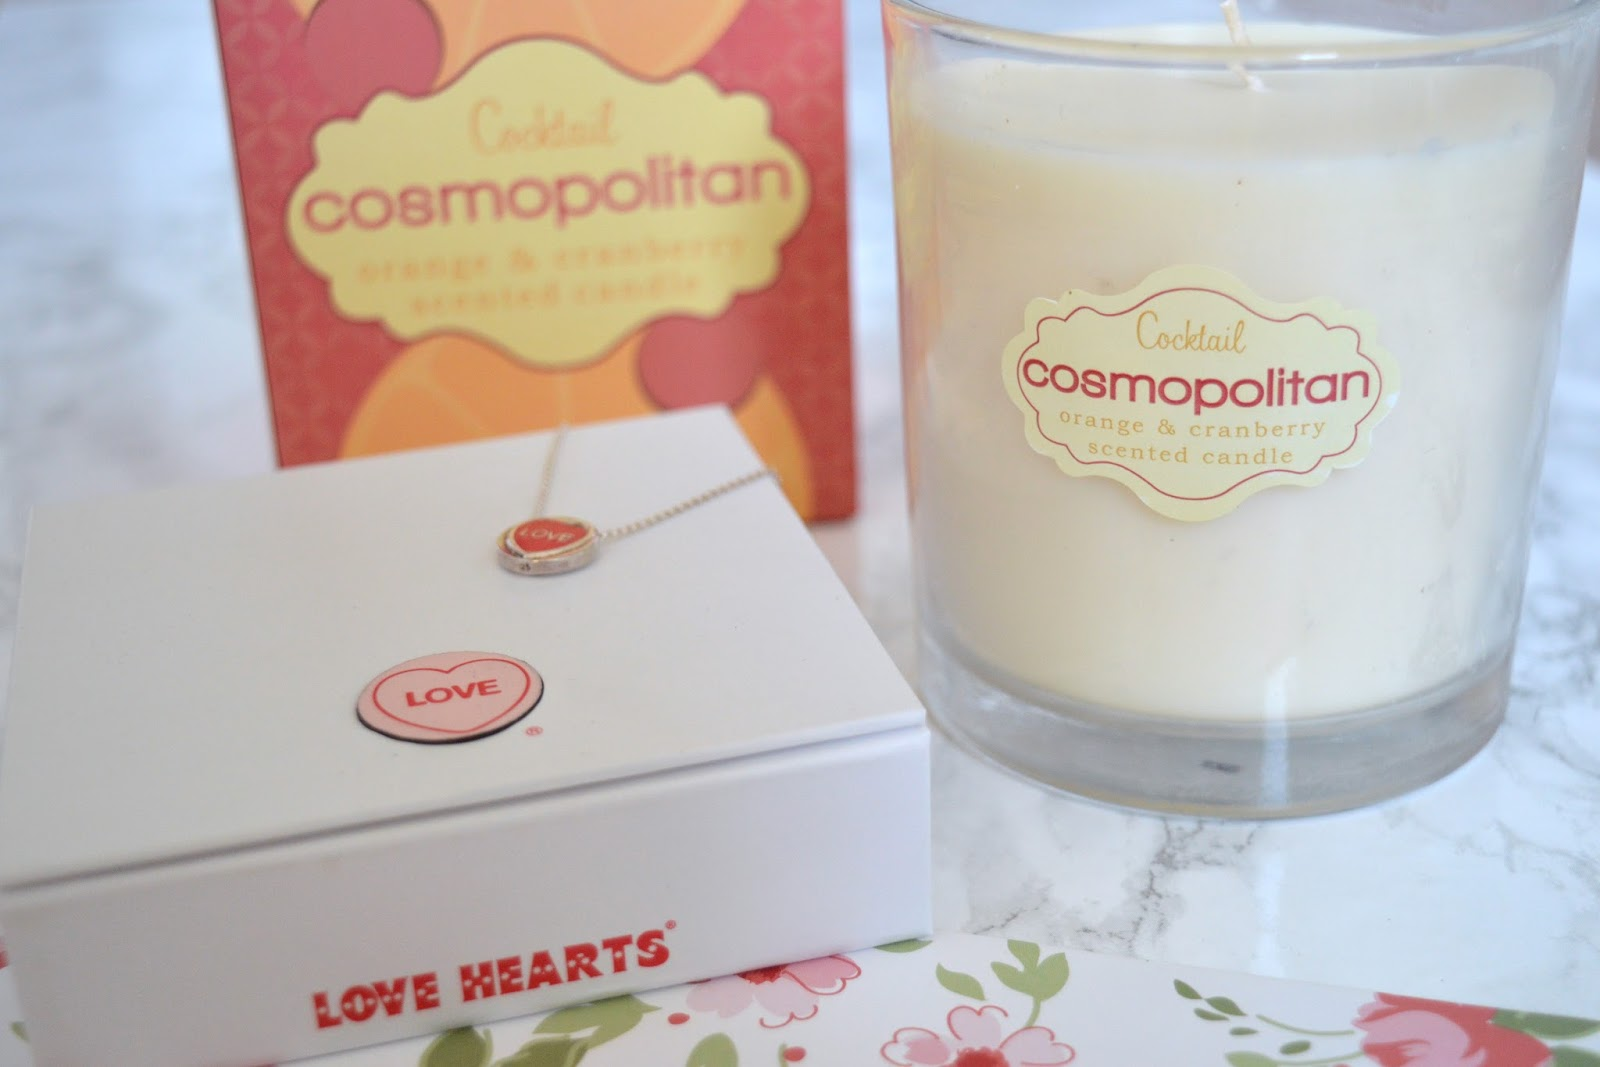 Cosmopolitan Cocktail Candle and Engraved Red Love Heart Necklace